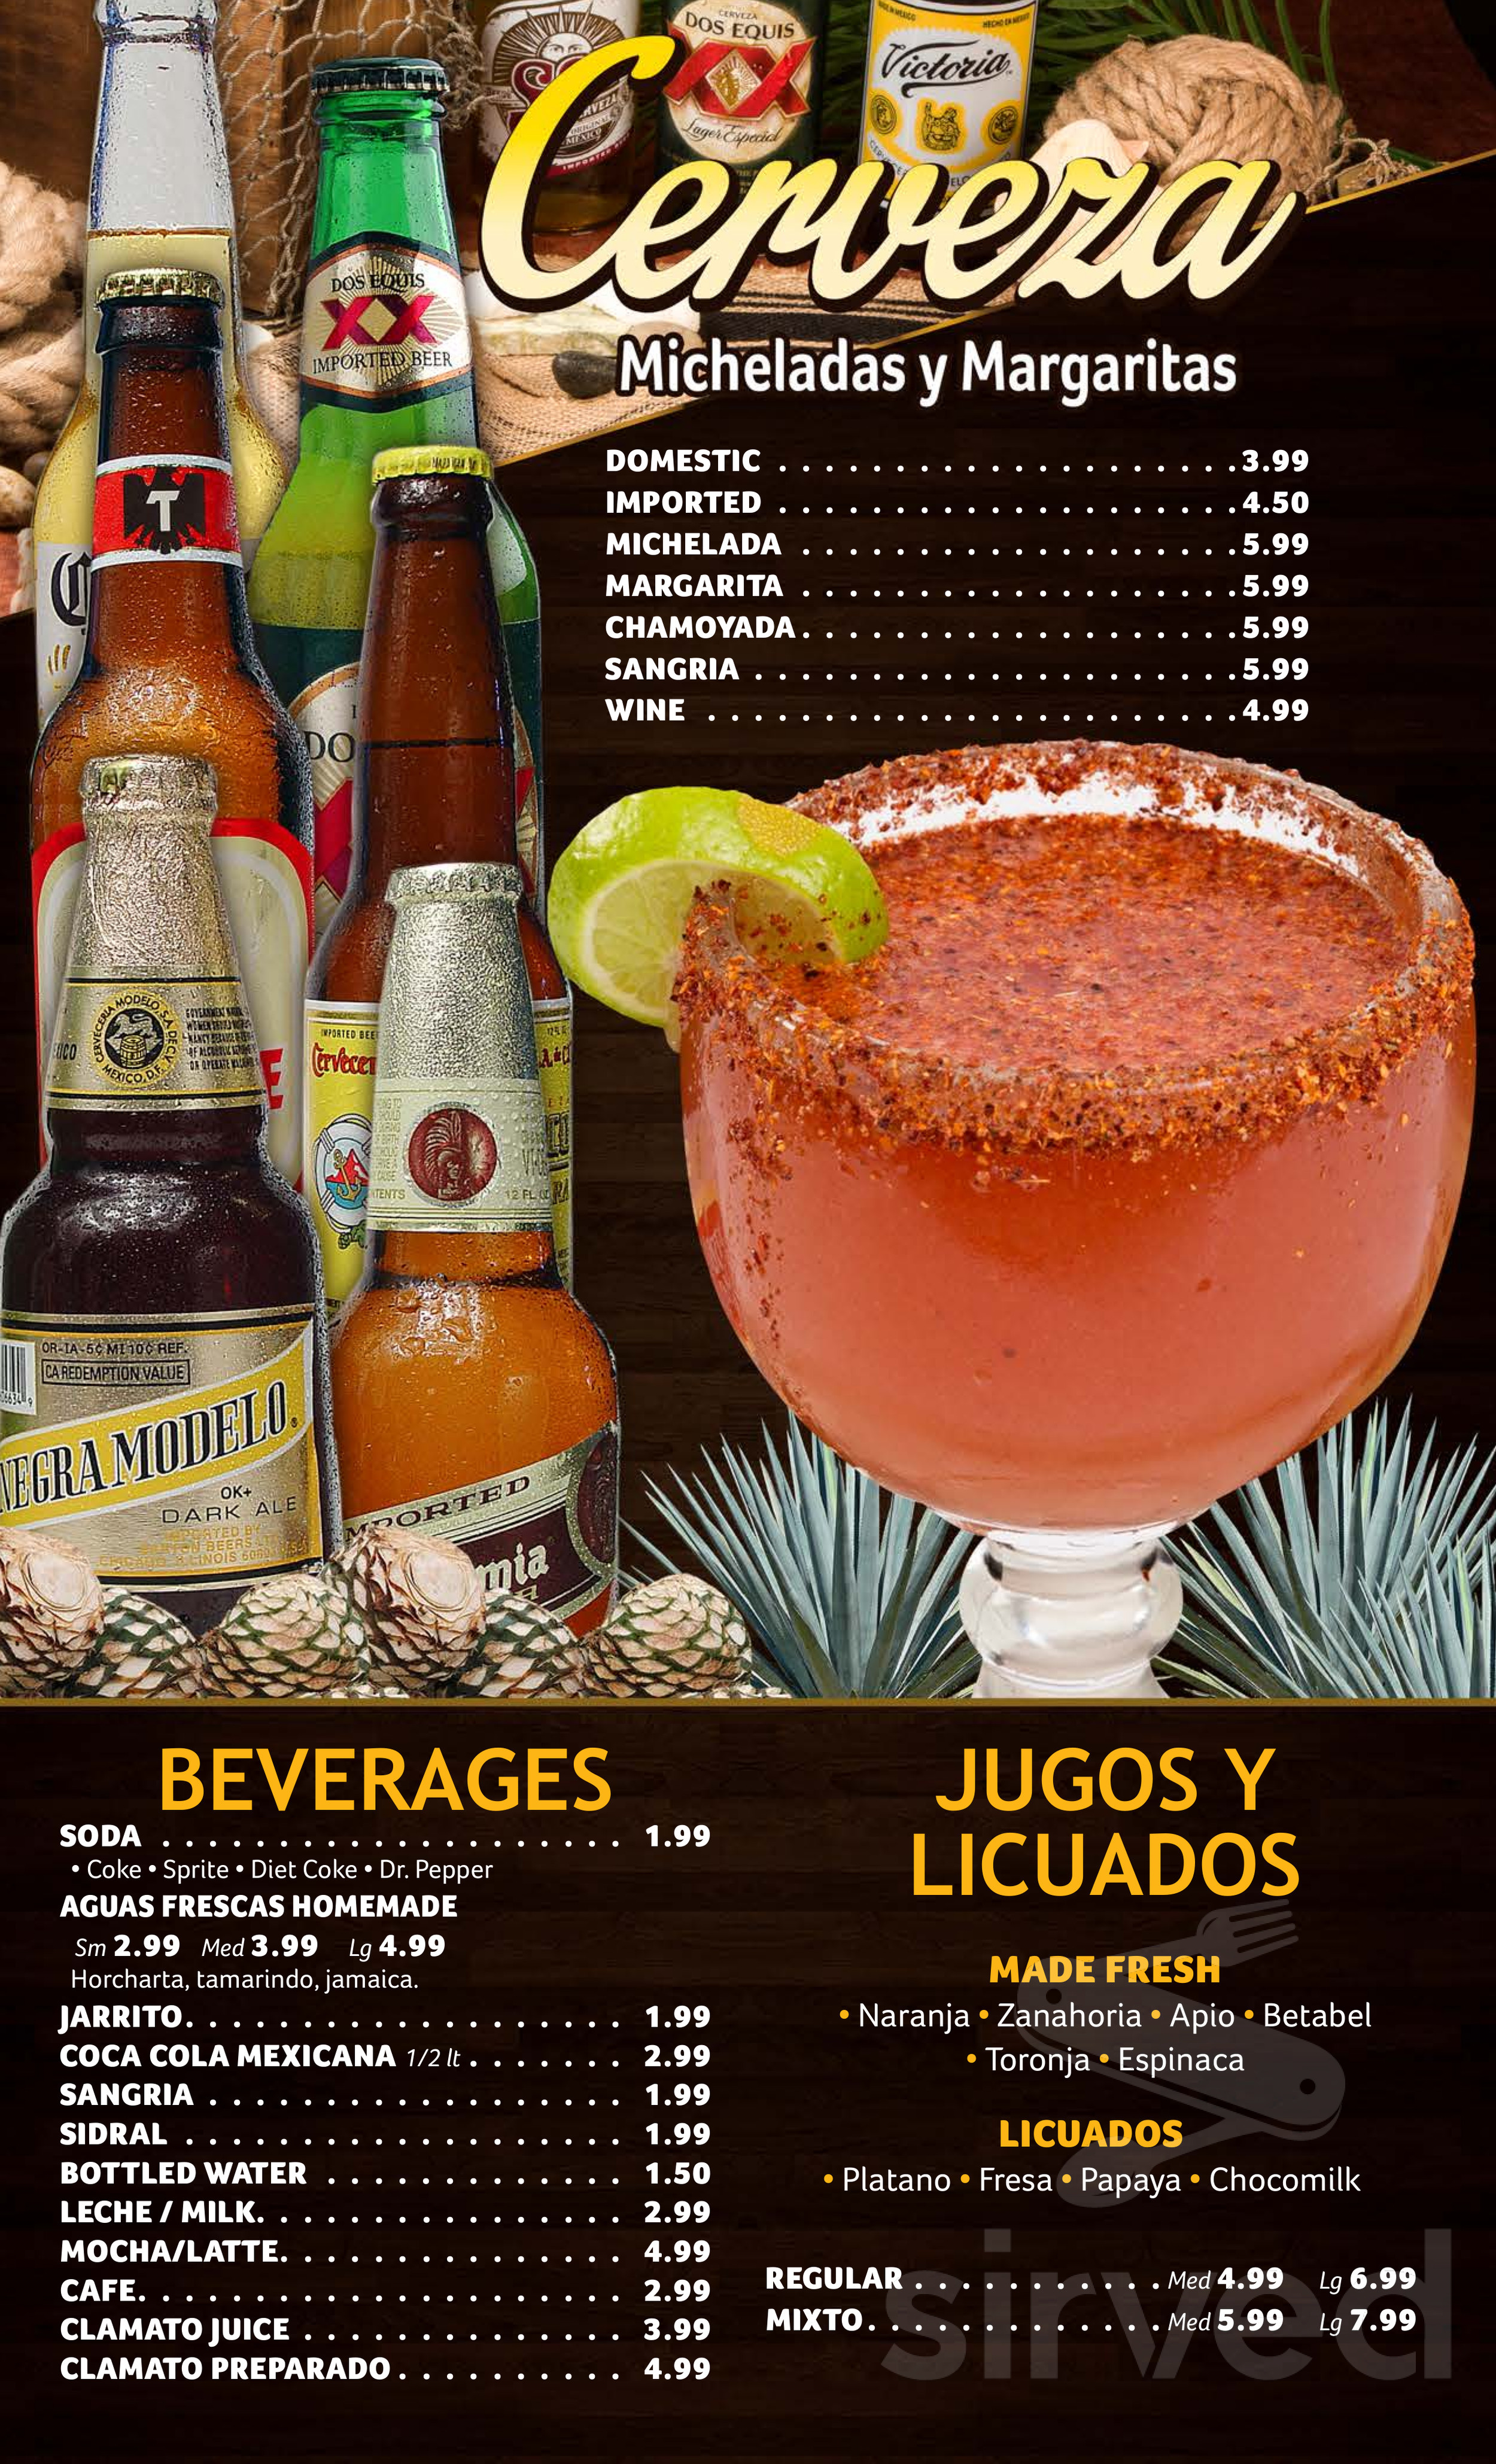 Menu for La Rana Mexican Restaurant in Laguna Hills, California